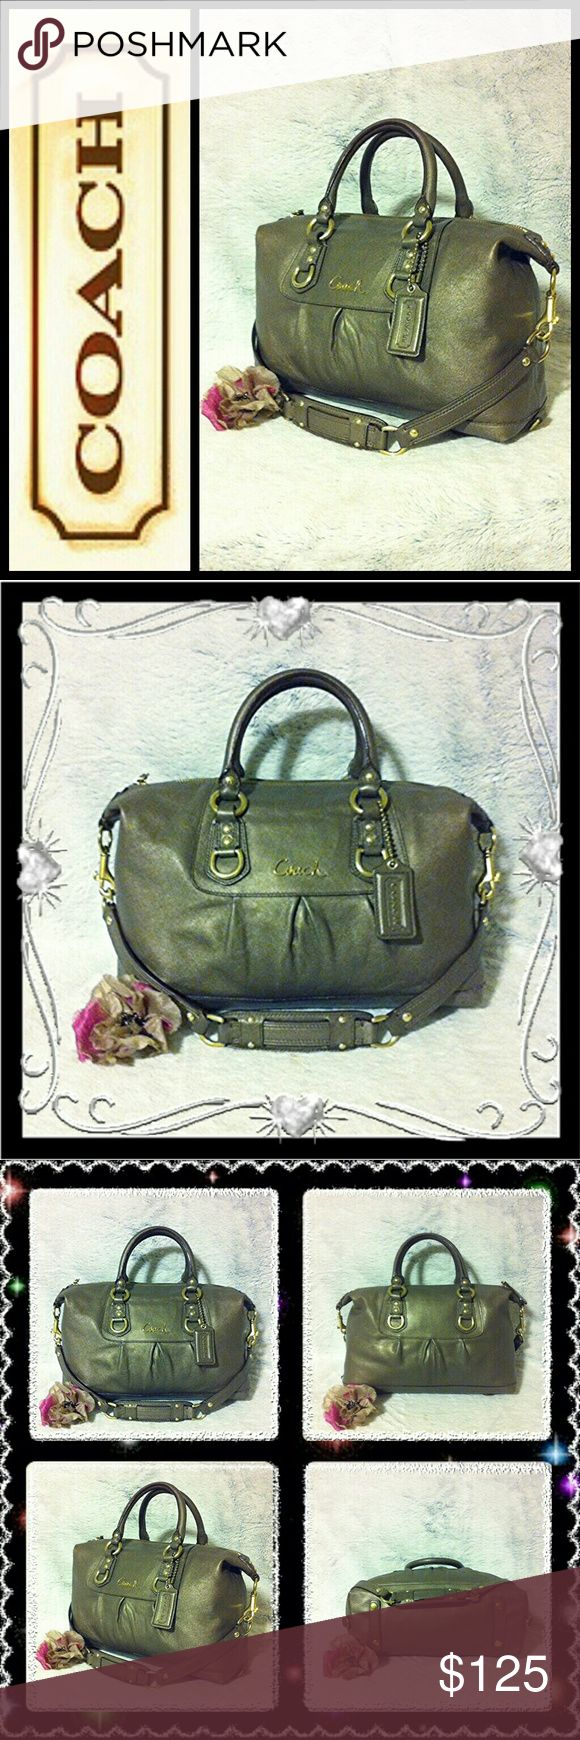 """🍃Coach Ashley Sabrina Pewter Satchel🍃 Coach Ashley Sabrina Gold/Pewter Satchel F15445 100% Authentic. Medium in size measuring approximately 13""""wide, 8""""long, 6""""depth, 5""""short strap drop, 10""""long strap drop. Creed patch reads No: B1271-F15445. Overall condition is very well kept with little signs of wear, such as: bottom corner wear, tiny scratches, small lightened color spots on leather, very minimal throughout. Straps show darkening & discoloration from normal use. The color is a smokey…"""